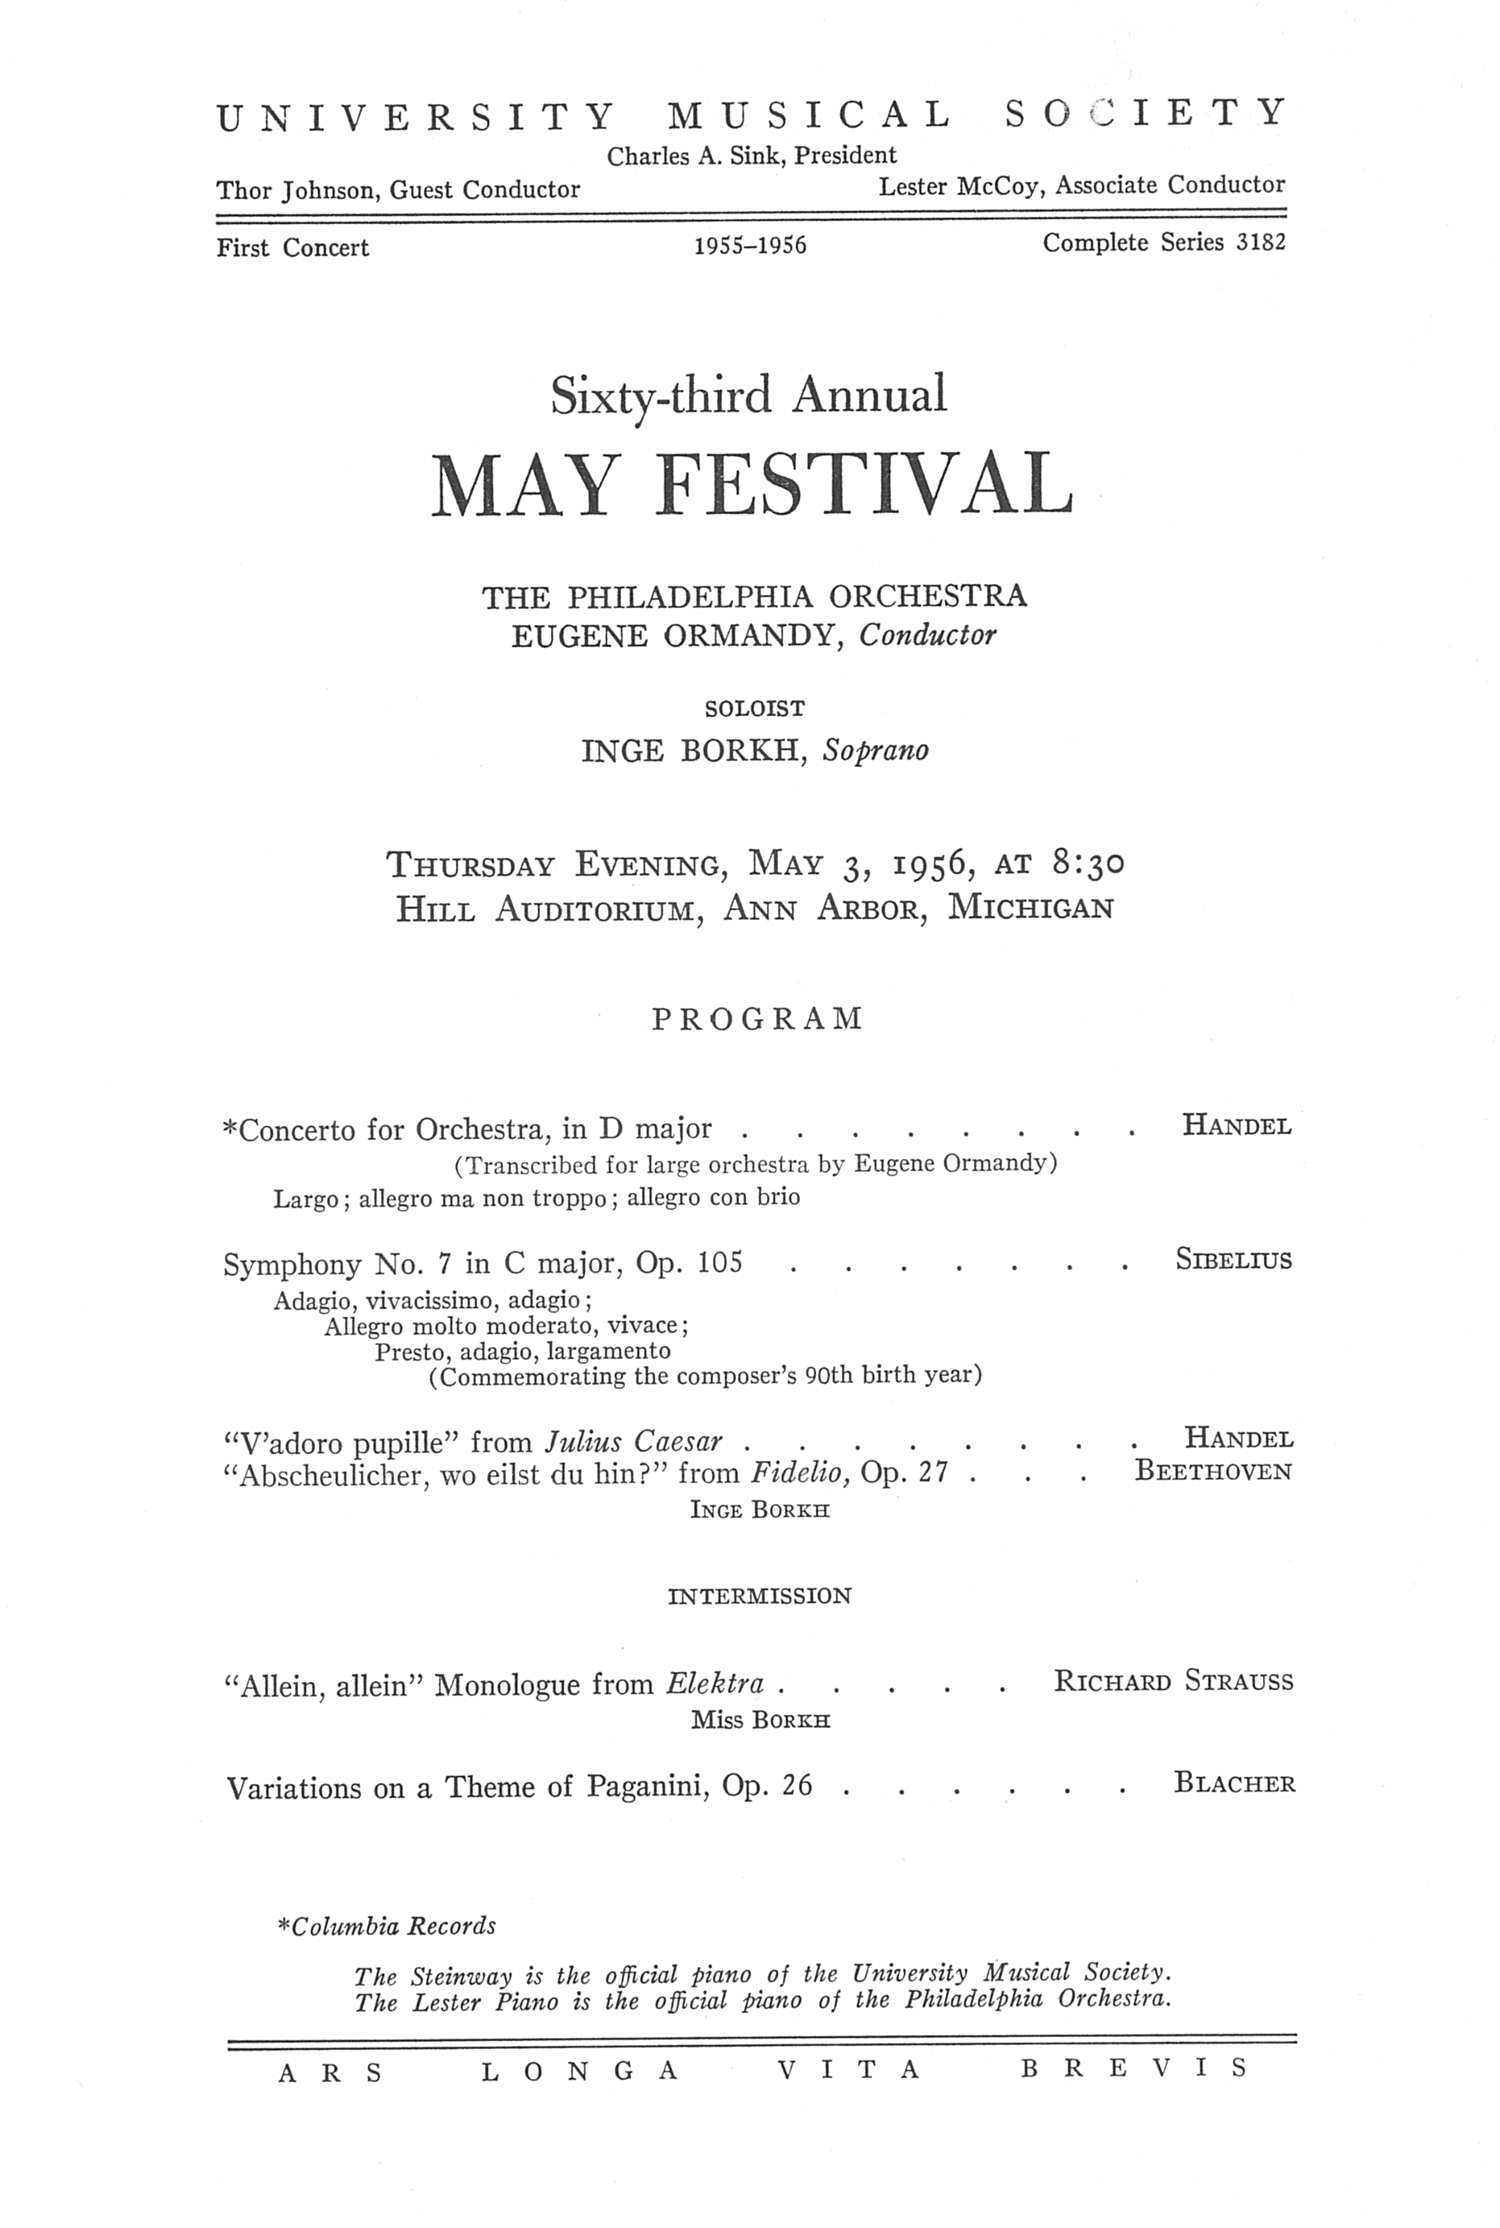 UMS Concert Program, May 3, 1956: Sixty-third Annual May Festival -- The Philadelphia Orchestra image